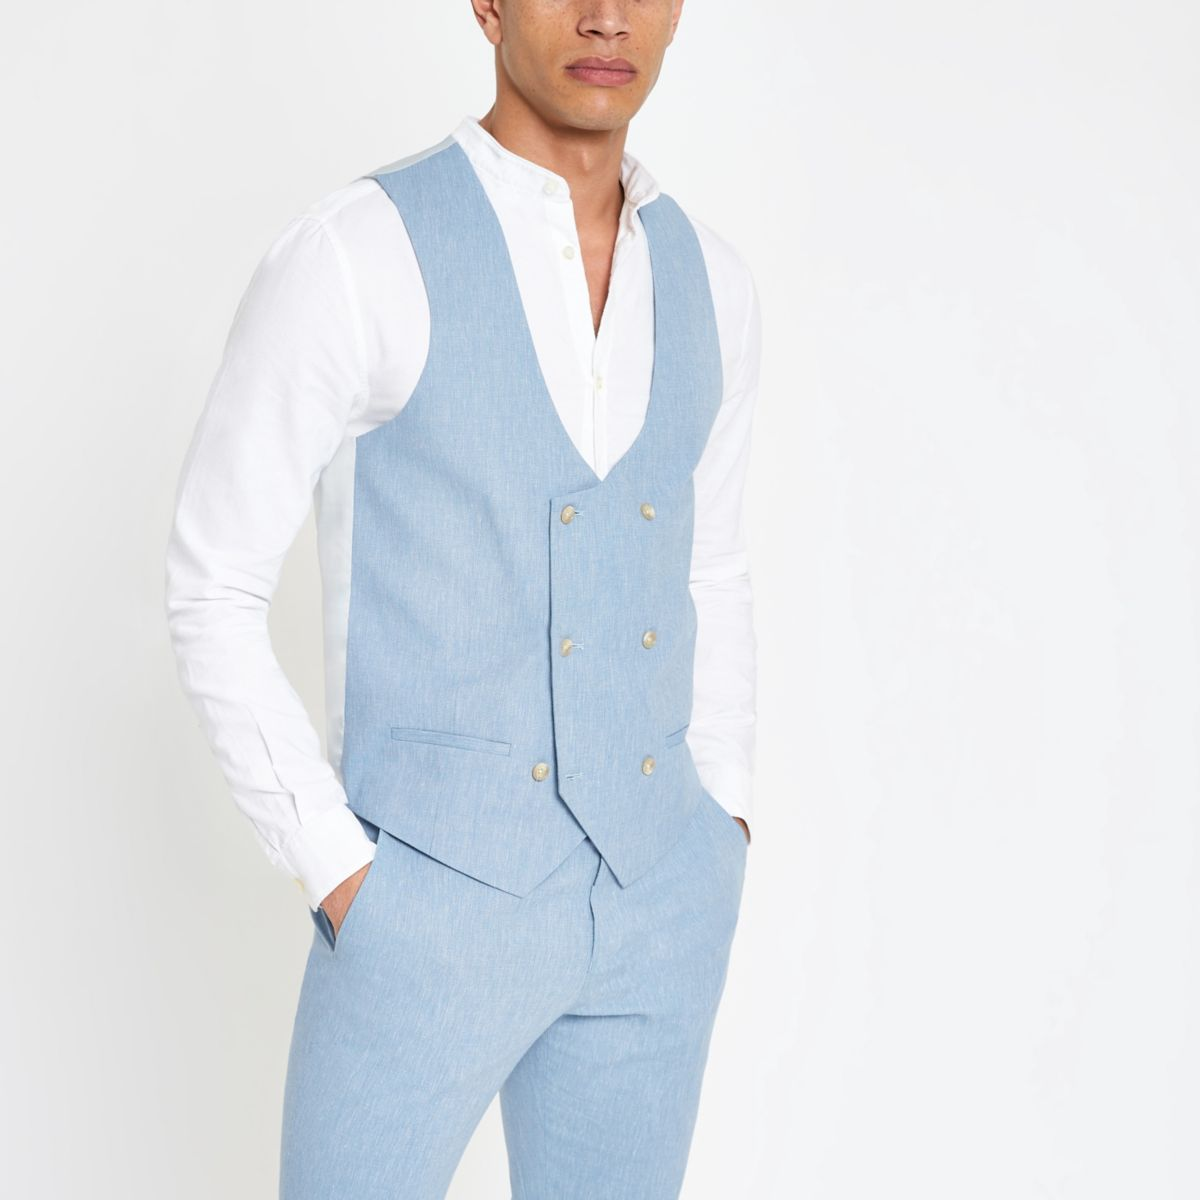 See our range of Mens Tweed Waistcoats for sale. From modern slim-fitting tweed waistcoasts to classic Harris tweed waistcoats, all delivered to your door UK. Heritage Check Navy Blue Waistcoat, Tweed, Tailored Fit Light Brown Tweed Three Piece Suit.